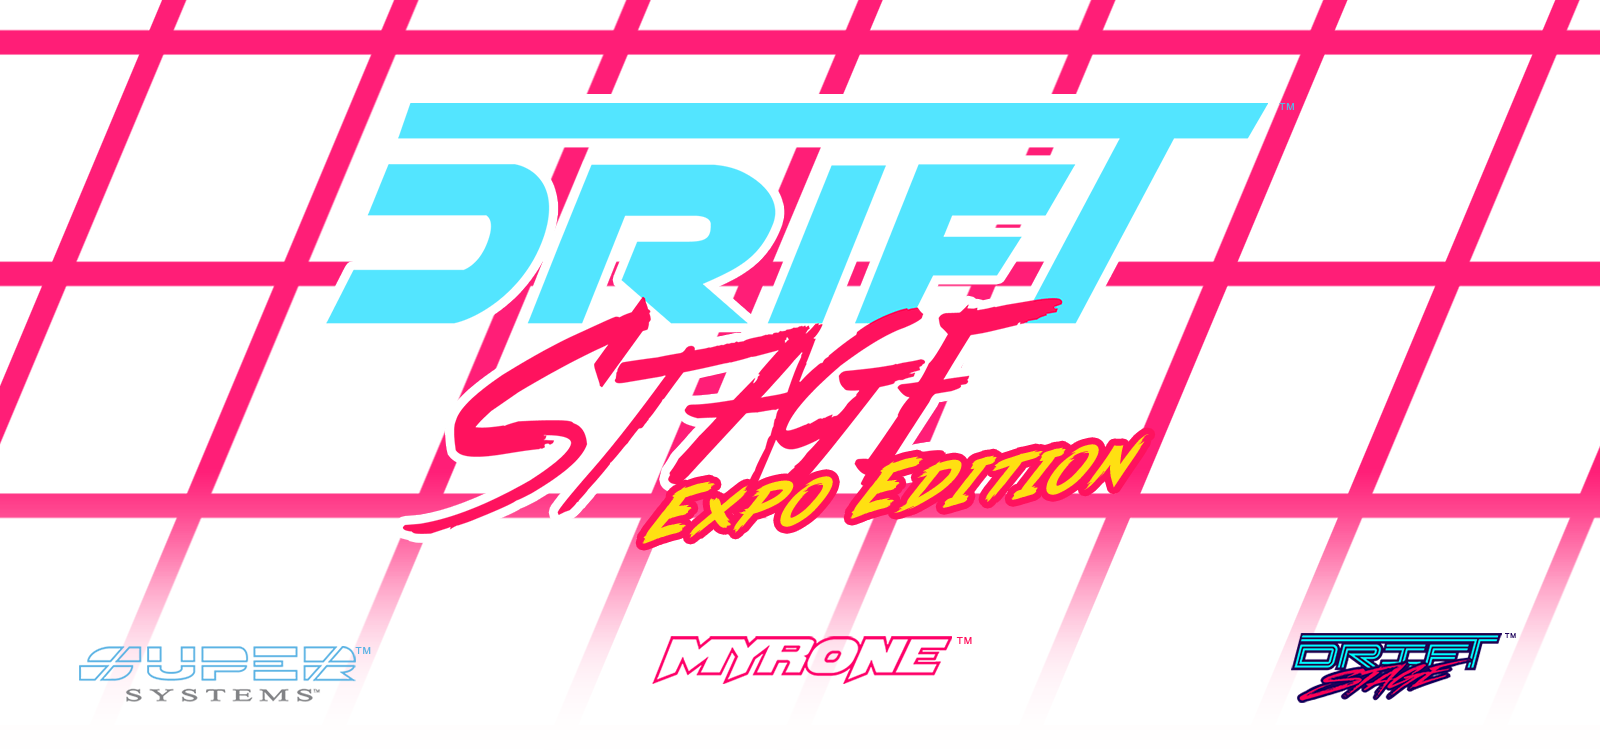 Drift Stage [Expo Version]